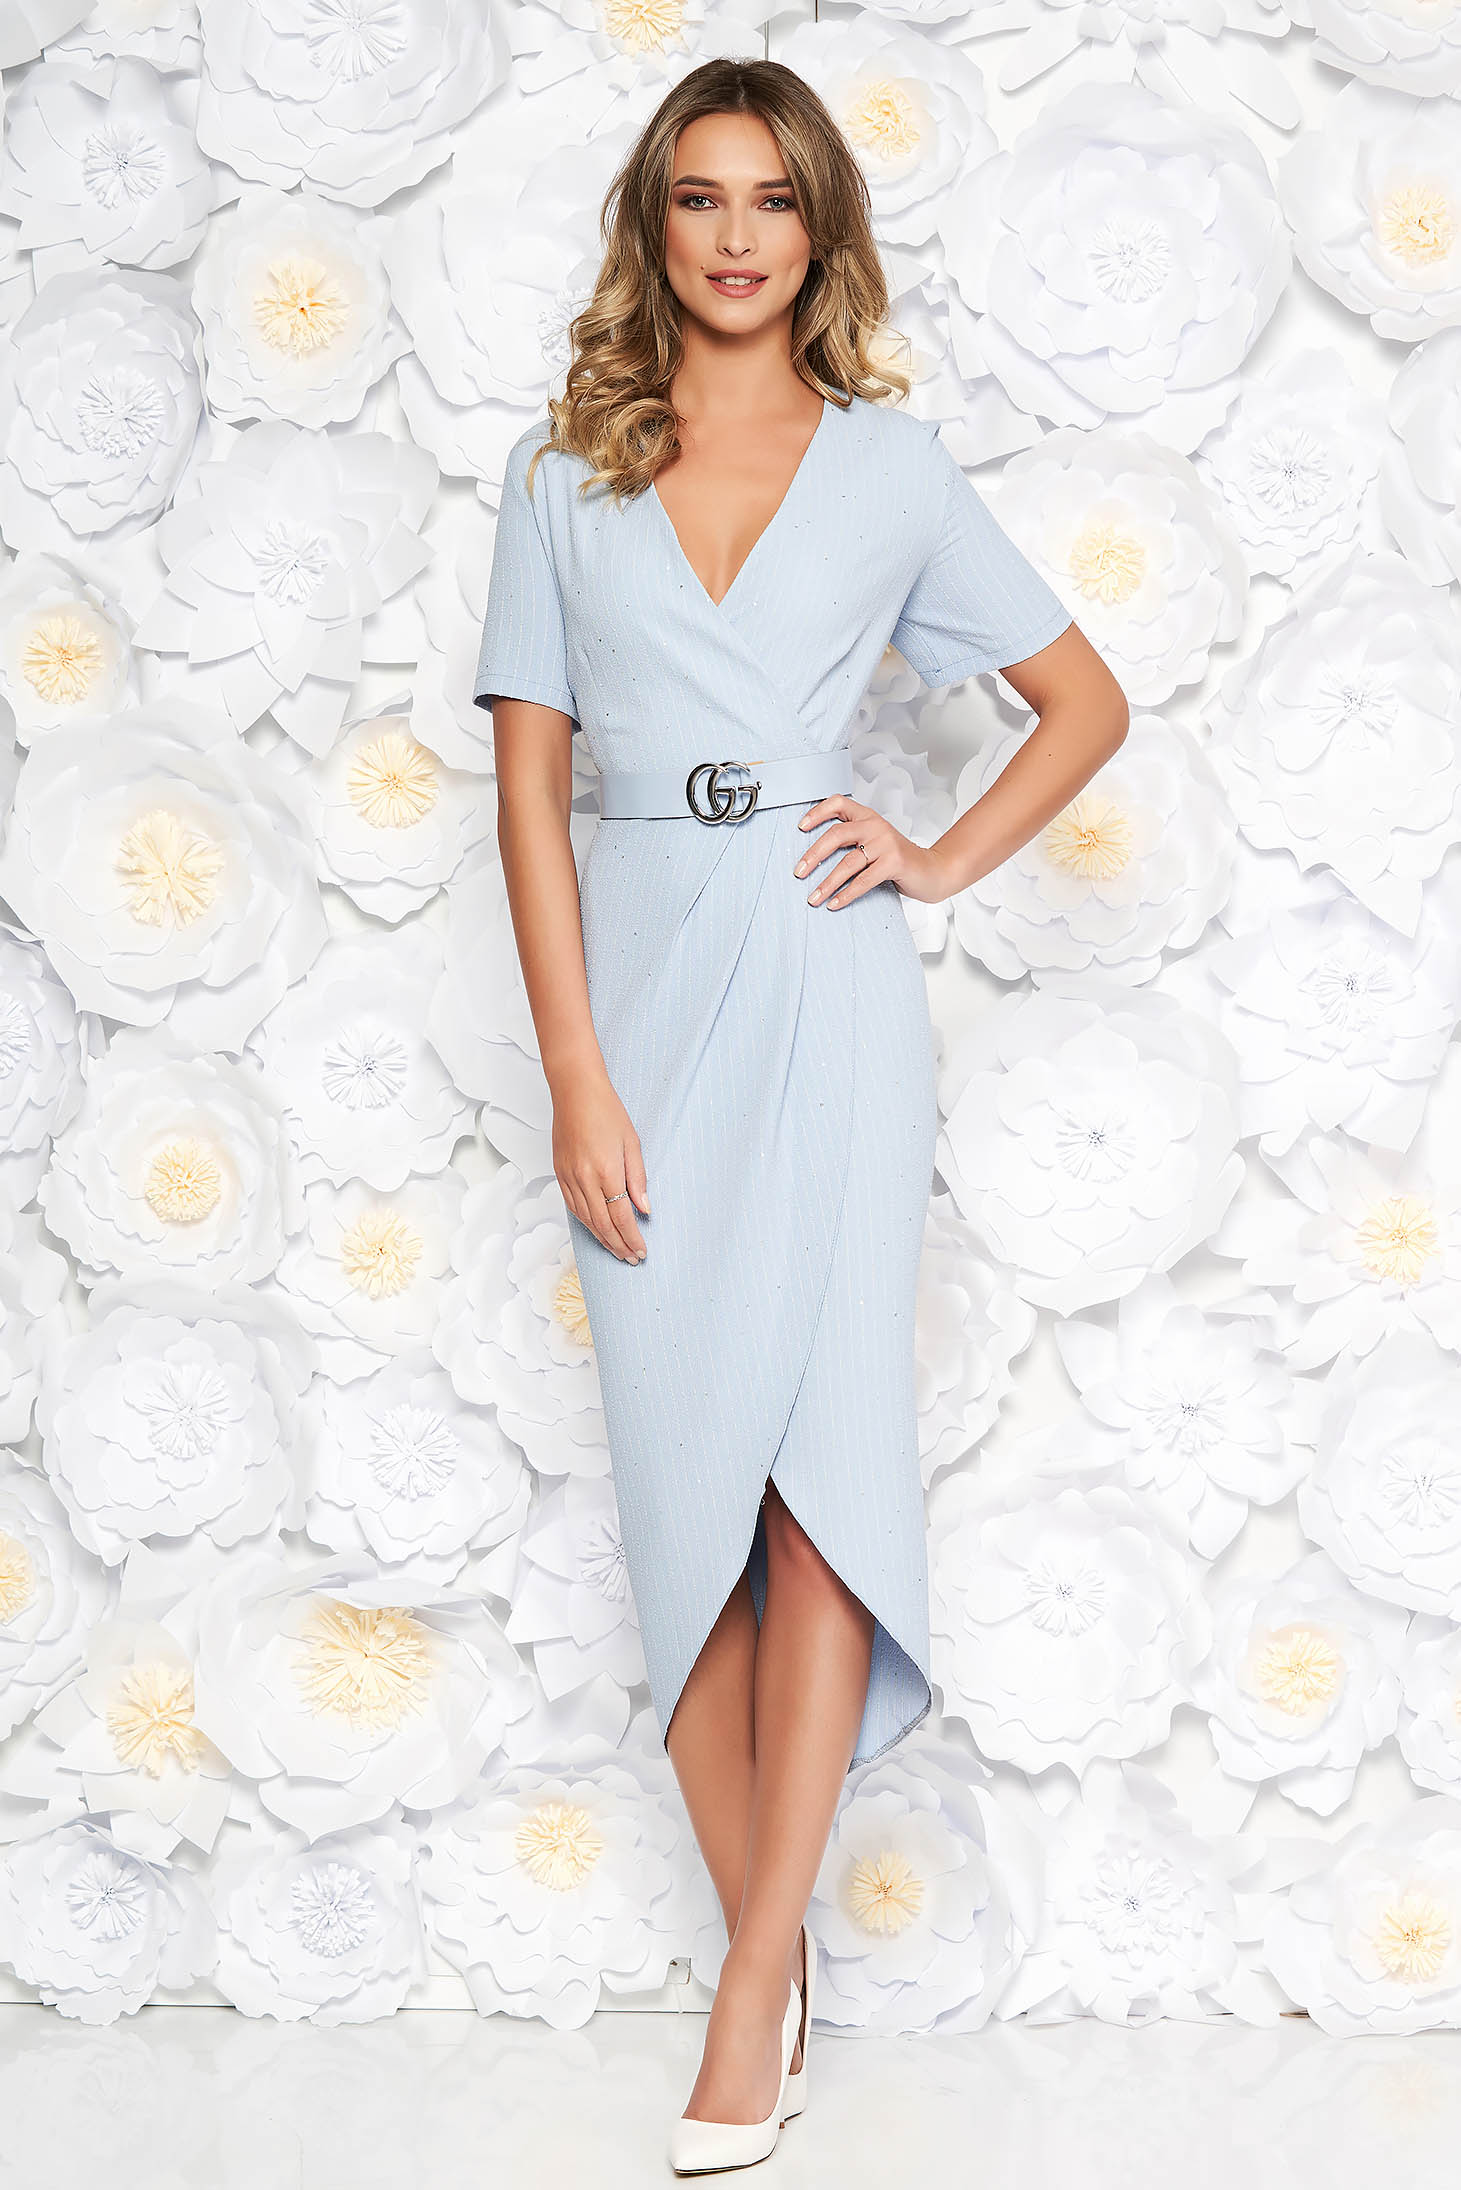 Lightblue elegant dress slightly elastic fabric with sequin embellished details accessorized with belt with tented cut